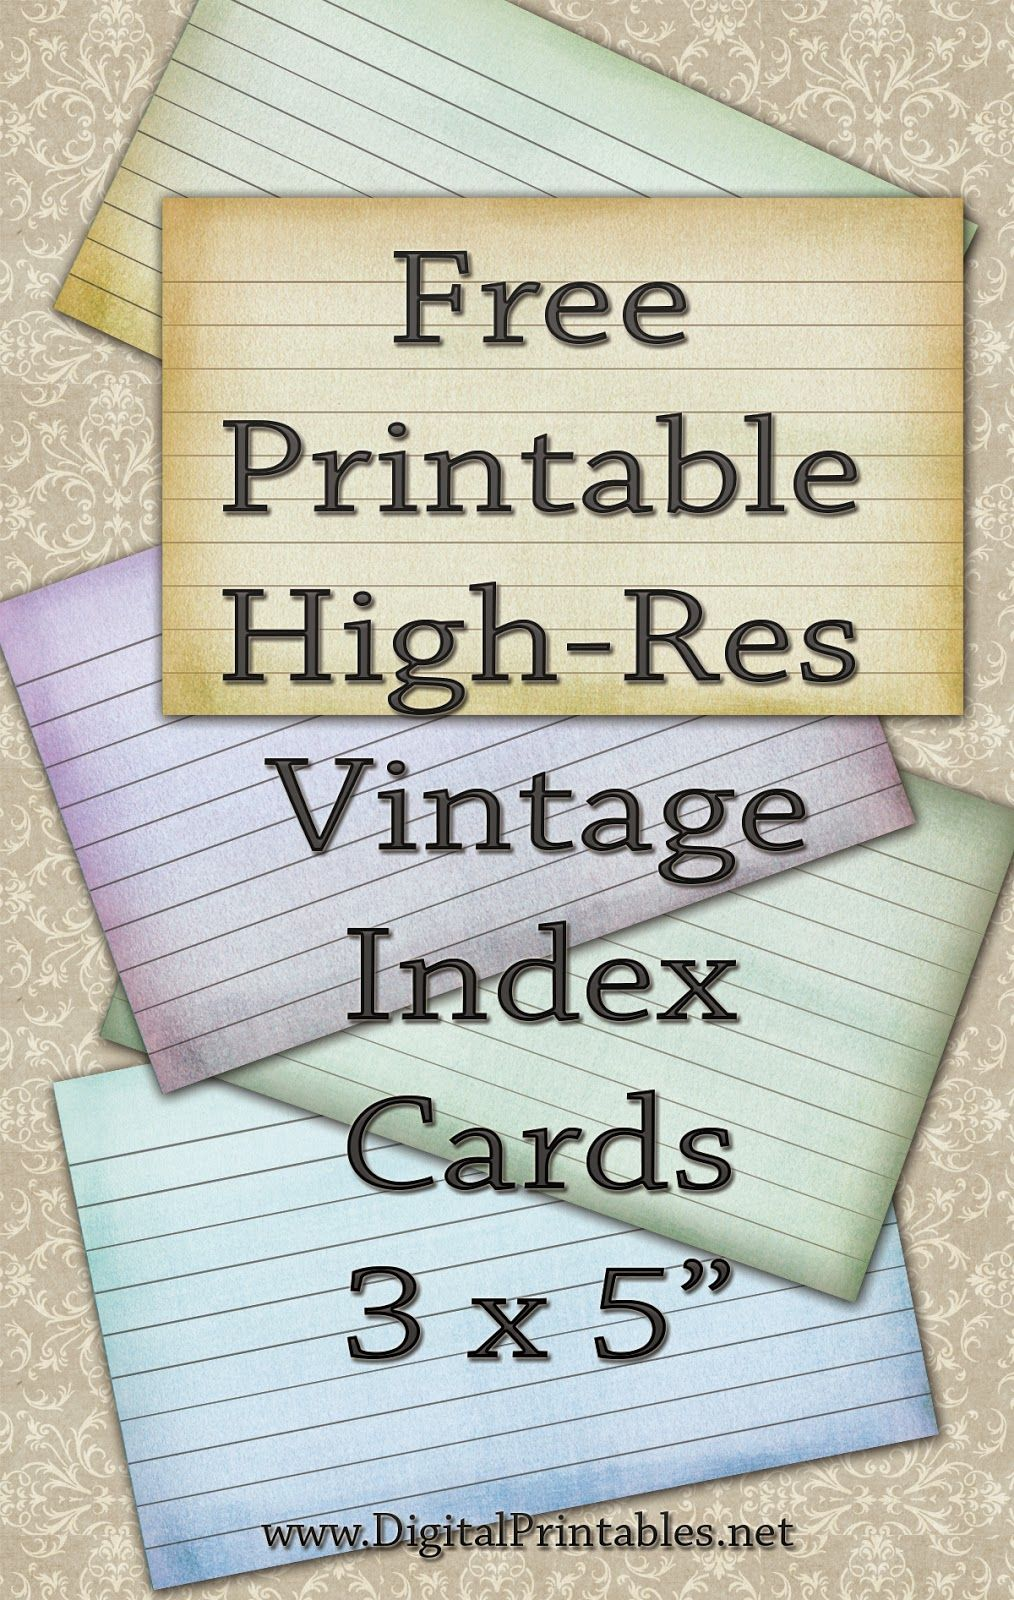 photograph about Printable Index Cards 4x6 named Cost-free Printable Index Playing cards Template Organization PSD, Excel